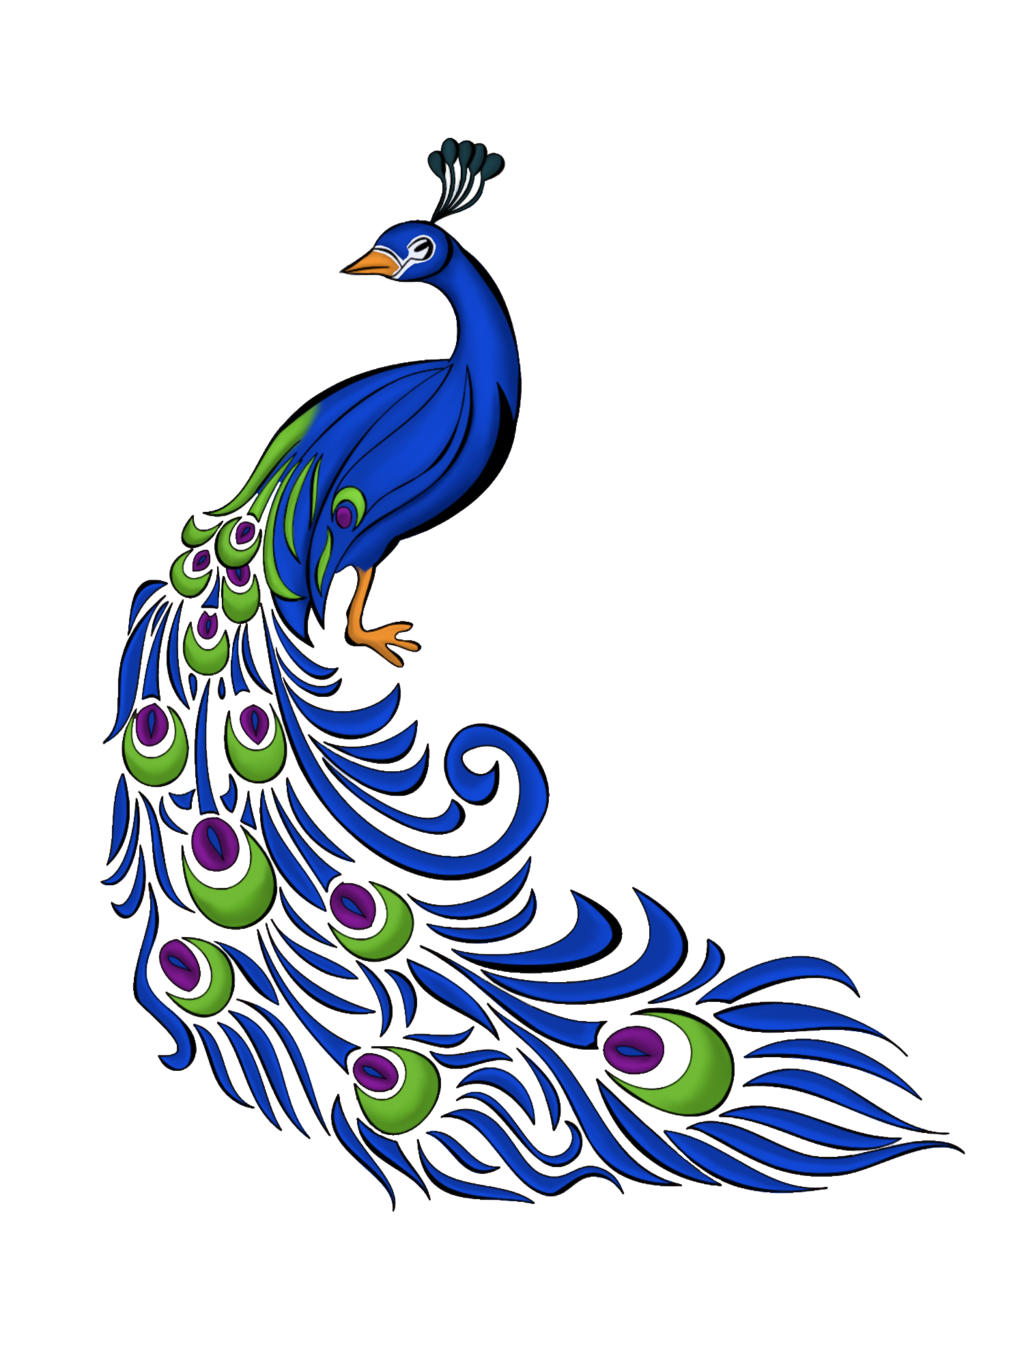 Simple Peacock Clipart Black And White-simple peacock clipart black and white-18